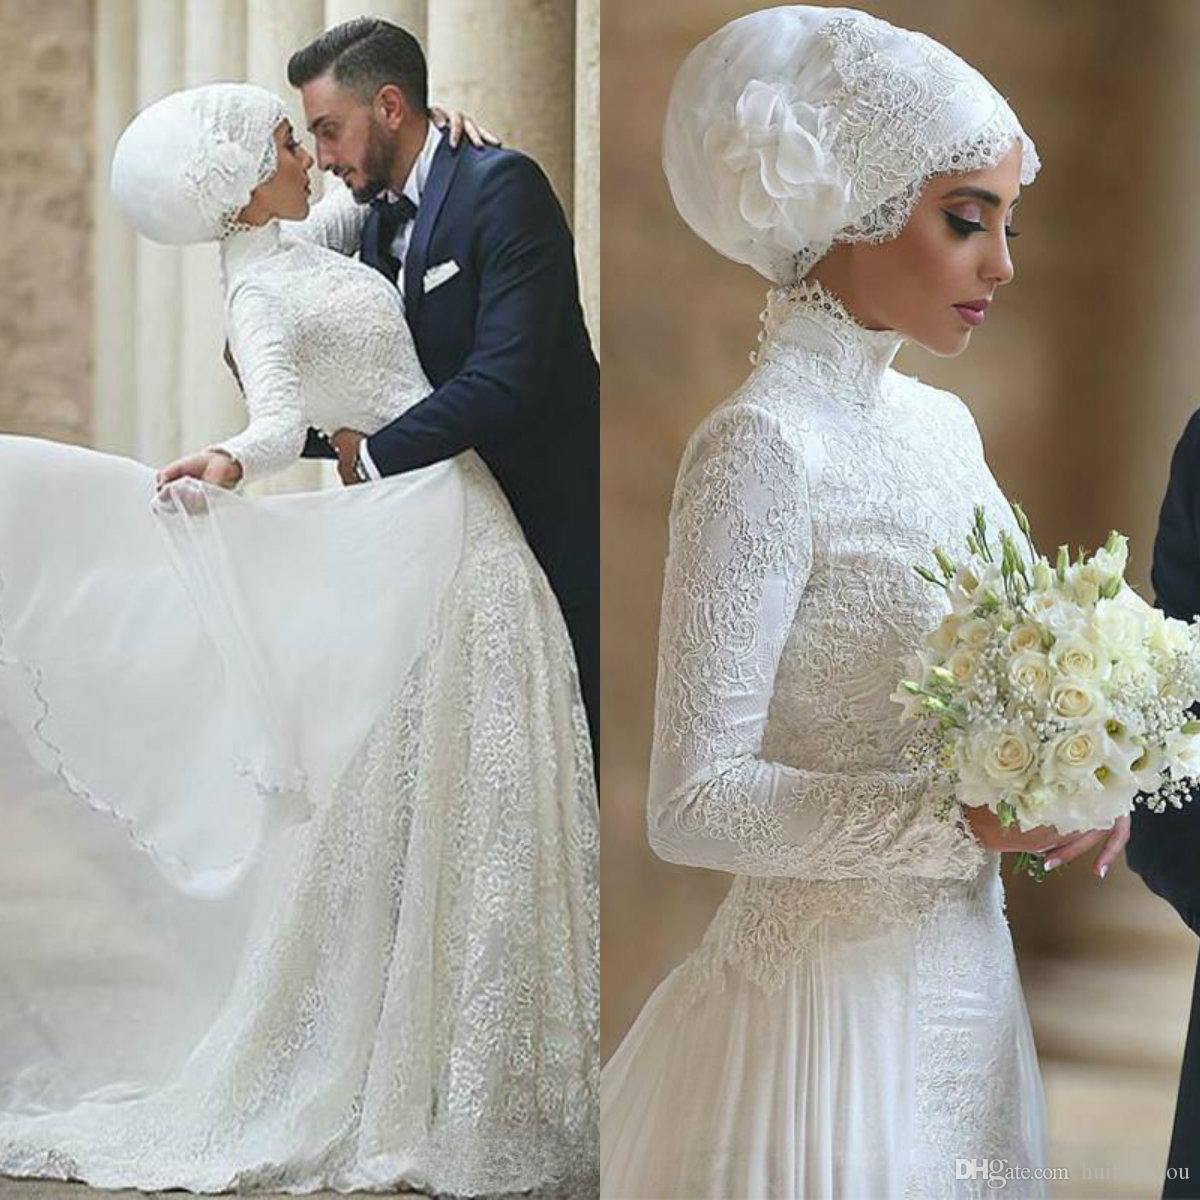 f5de89ec53ce Discount Middle East Muslim Wedding Dresses 2019 Long Sleeve Lace Applique  Dubai Arabic Bridal Gowns Plus Size Wedding Dress Vestido De Novia  Affordable ...